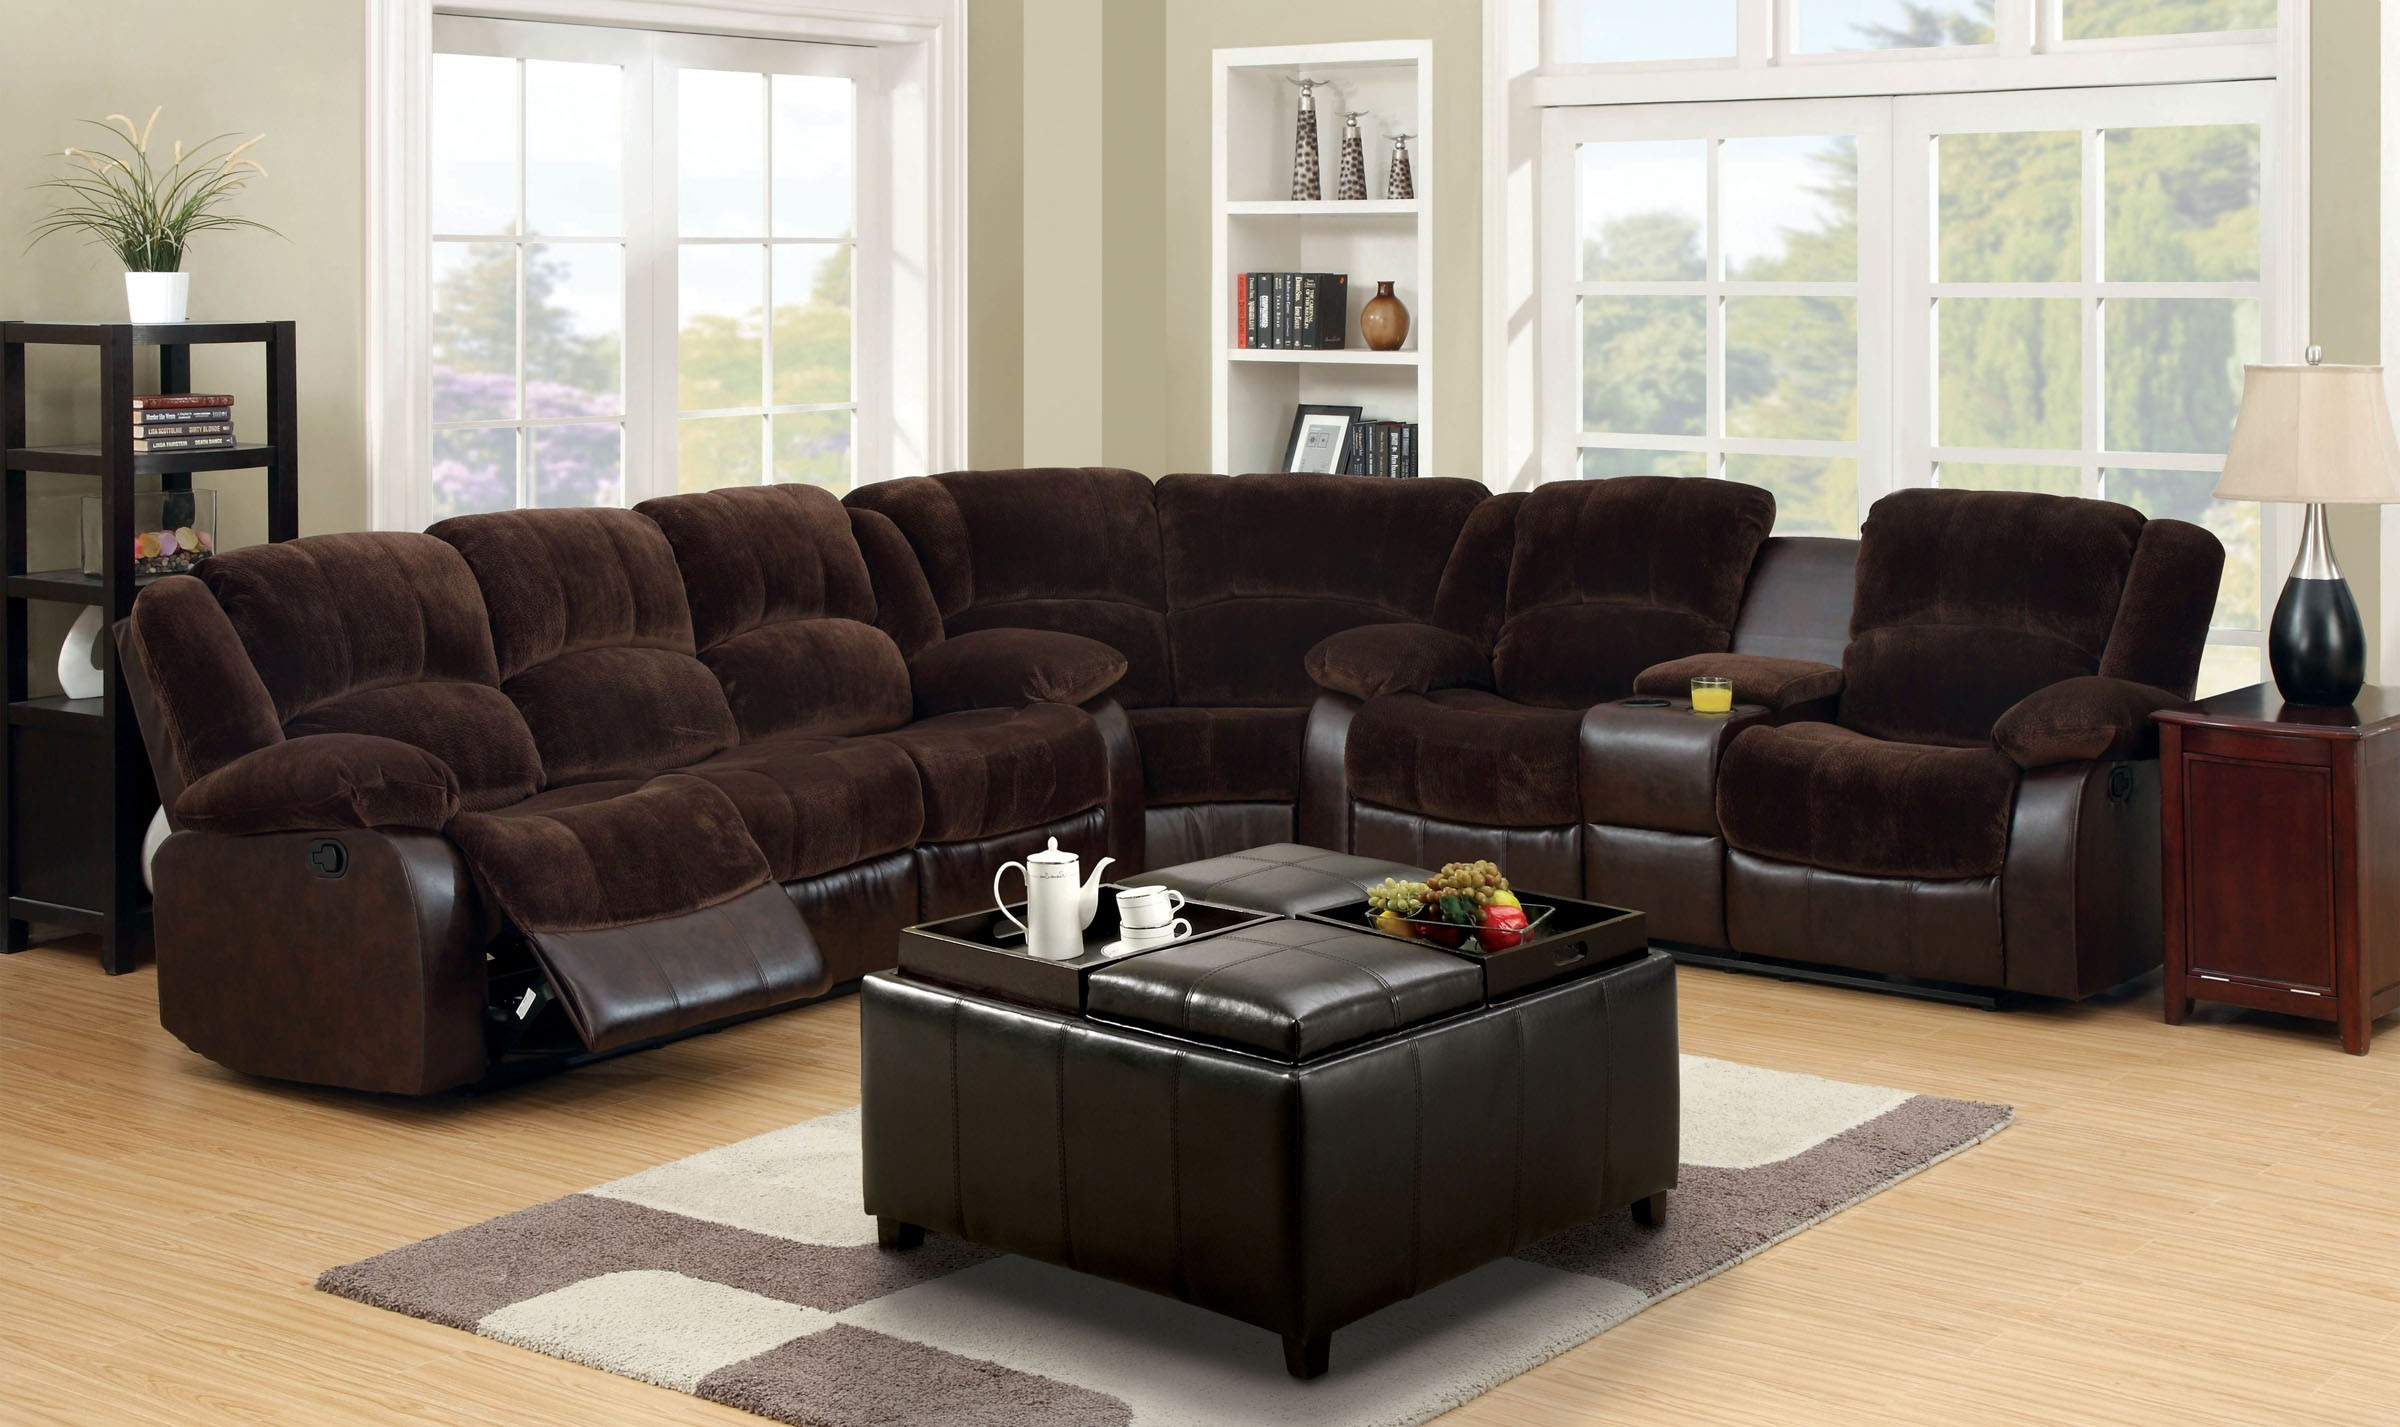 Furniture Of America Cm6556cp Winchester Transitional Brown Within Champion Sectional Sofa (Image 6 of 15)